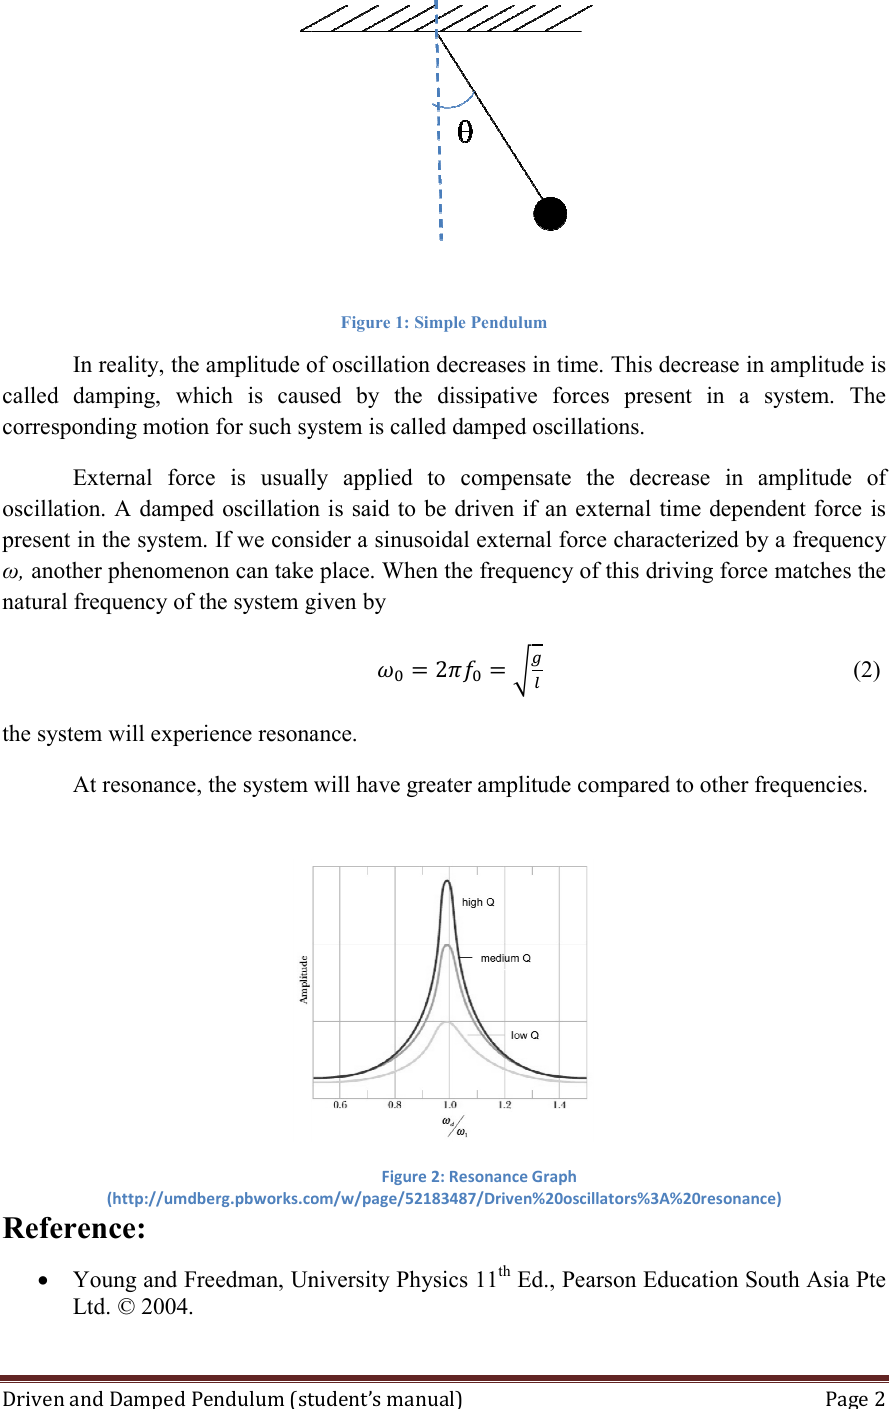 hight resolution of page 2 of 10 01 driven and damped pendulum experiment manual